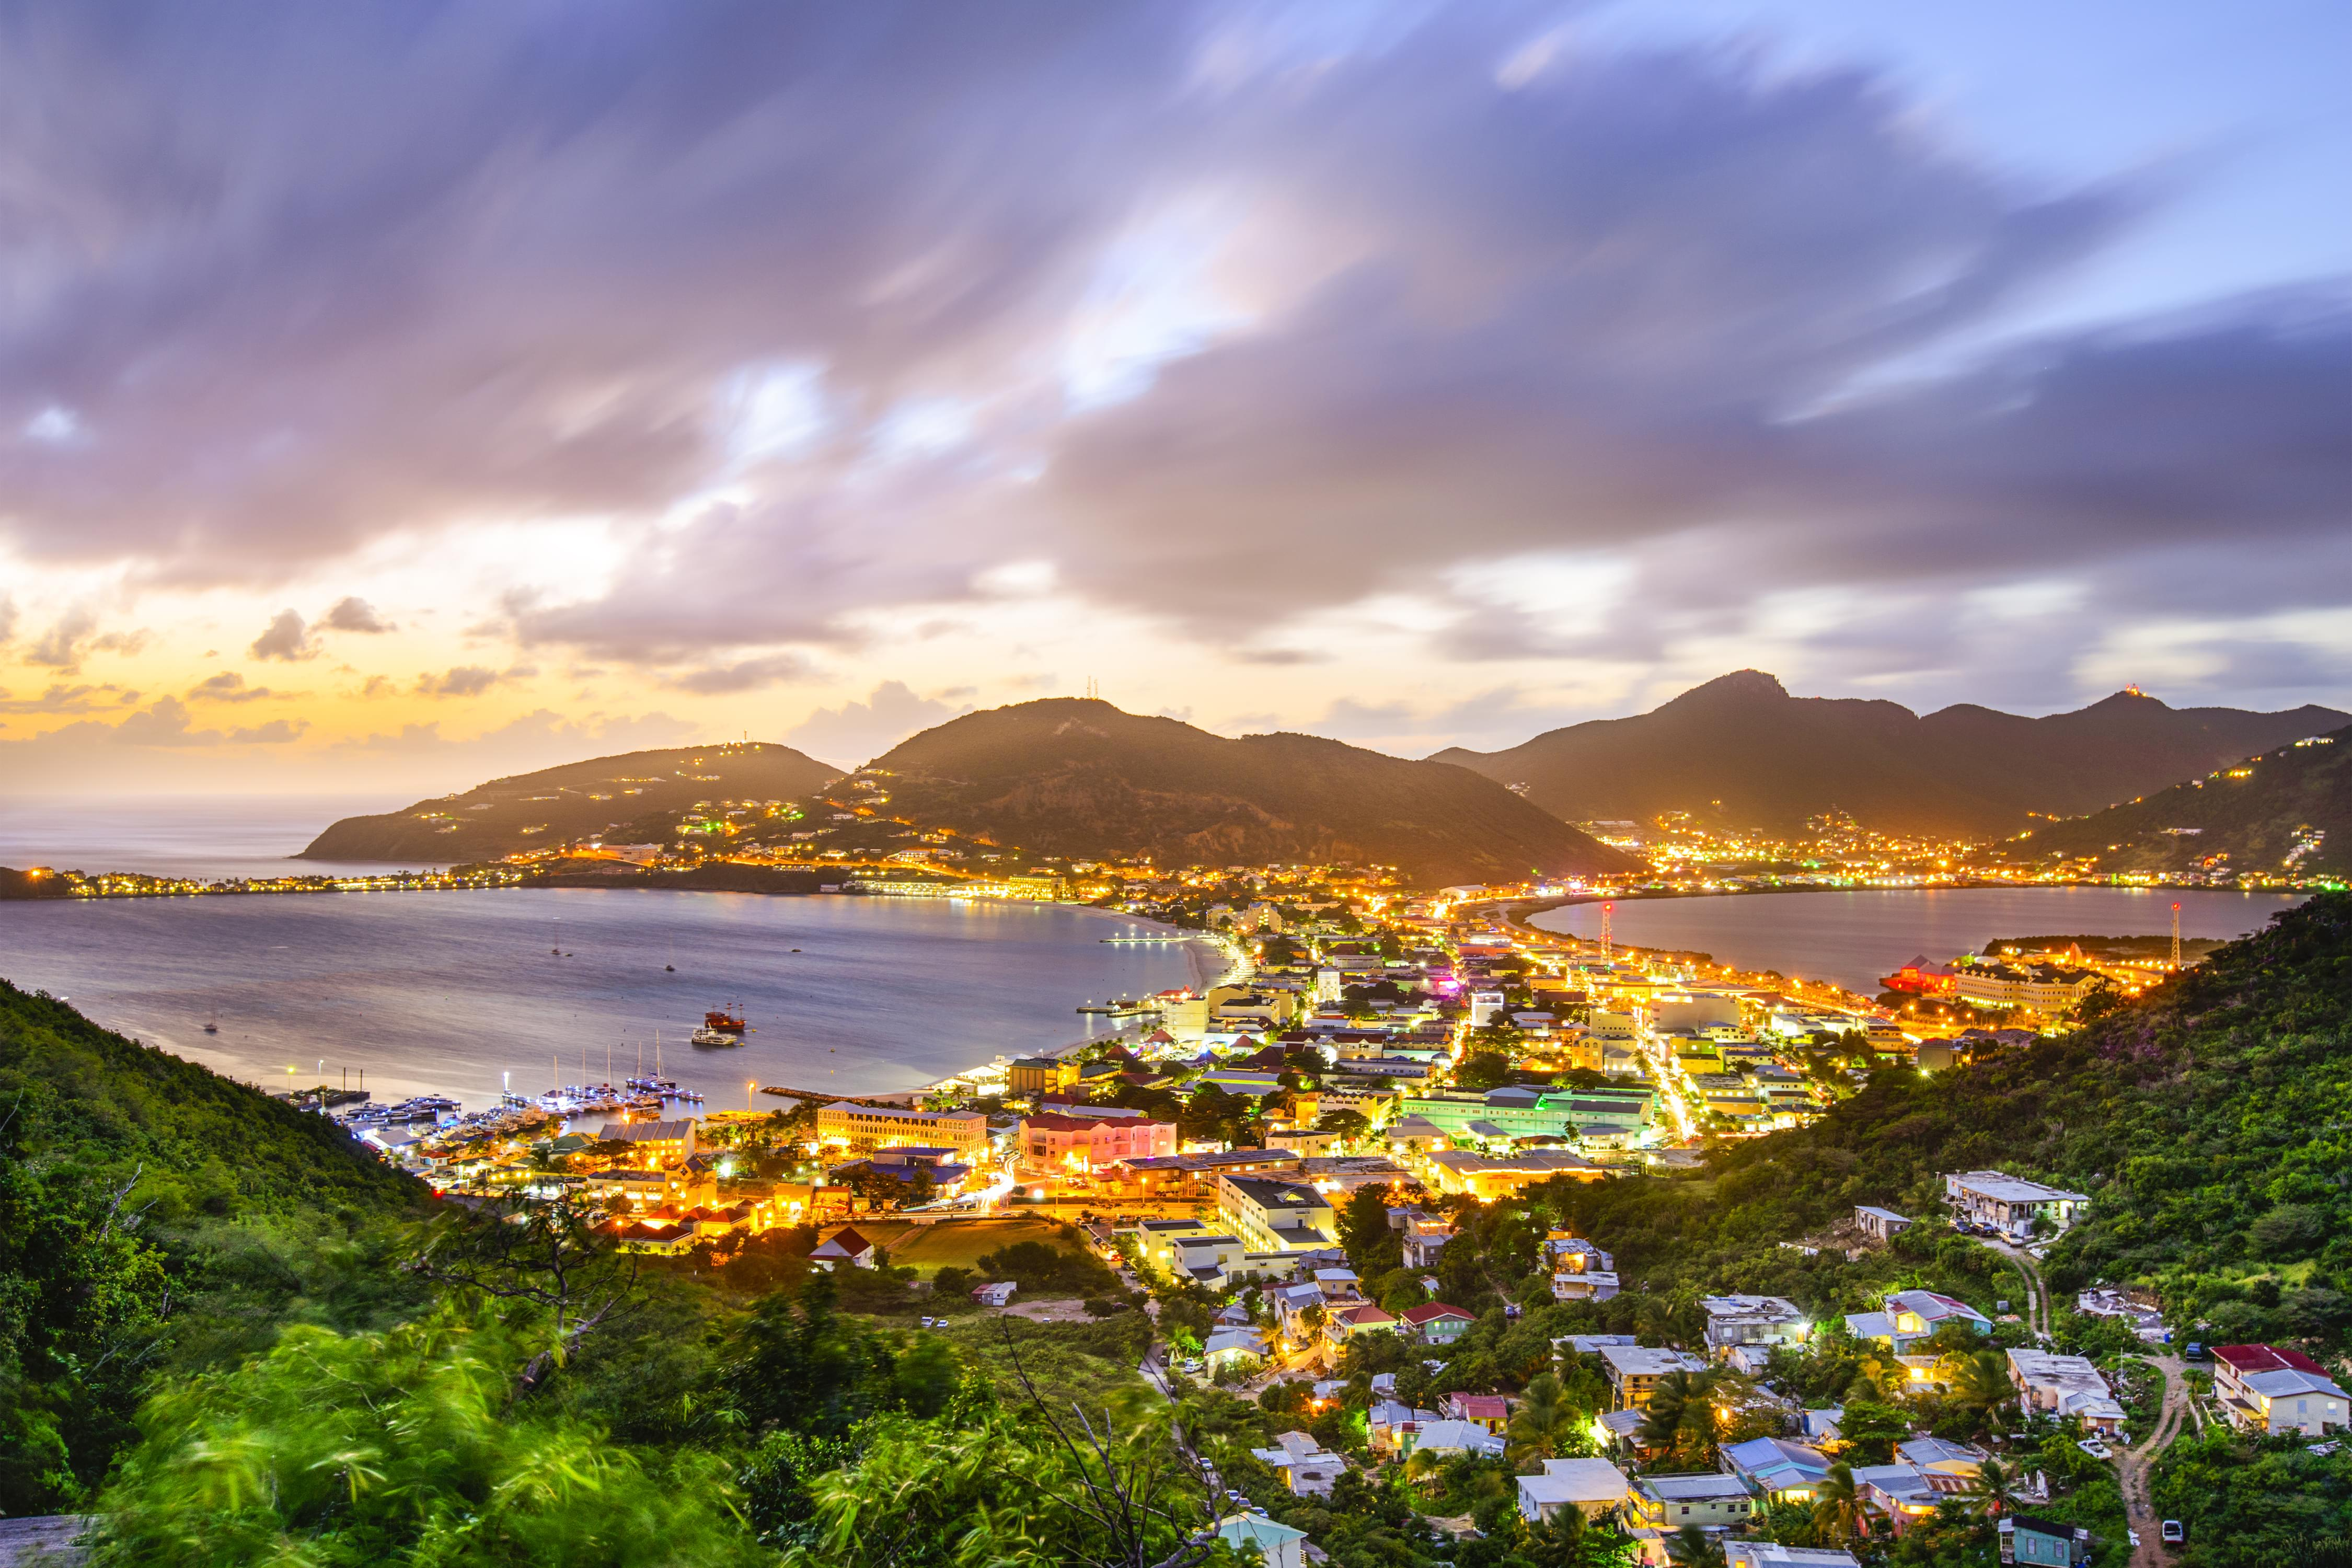 St Maarten for Crypto Mastermind Event Future